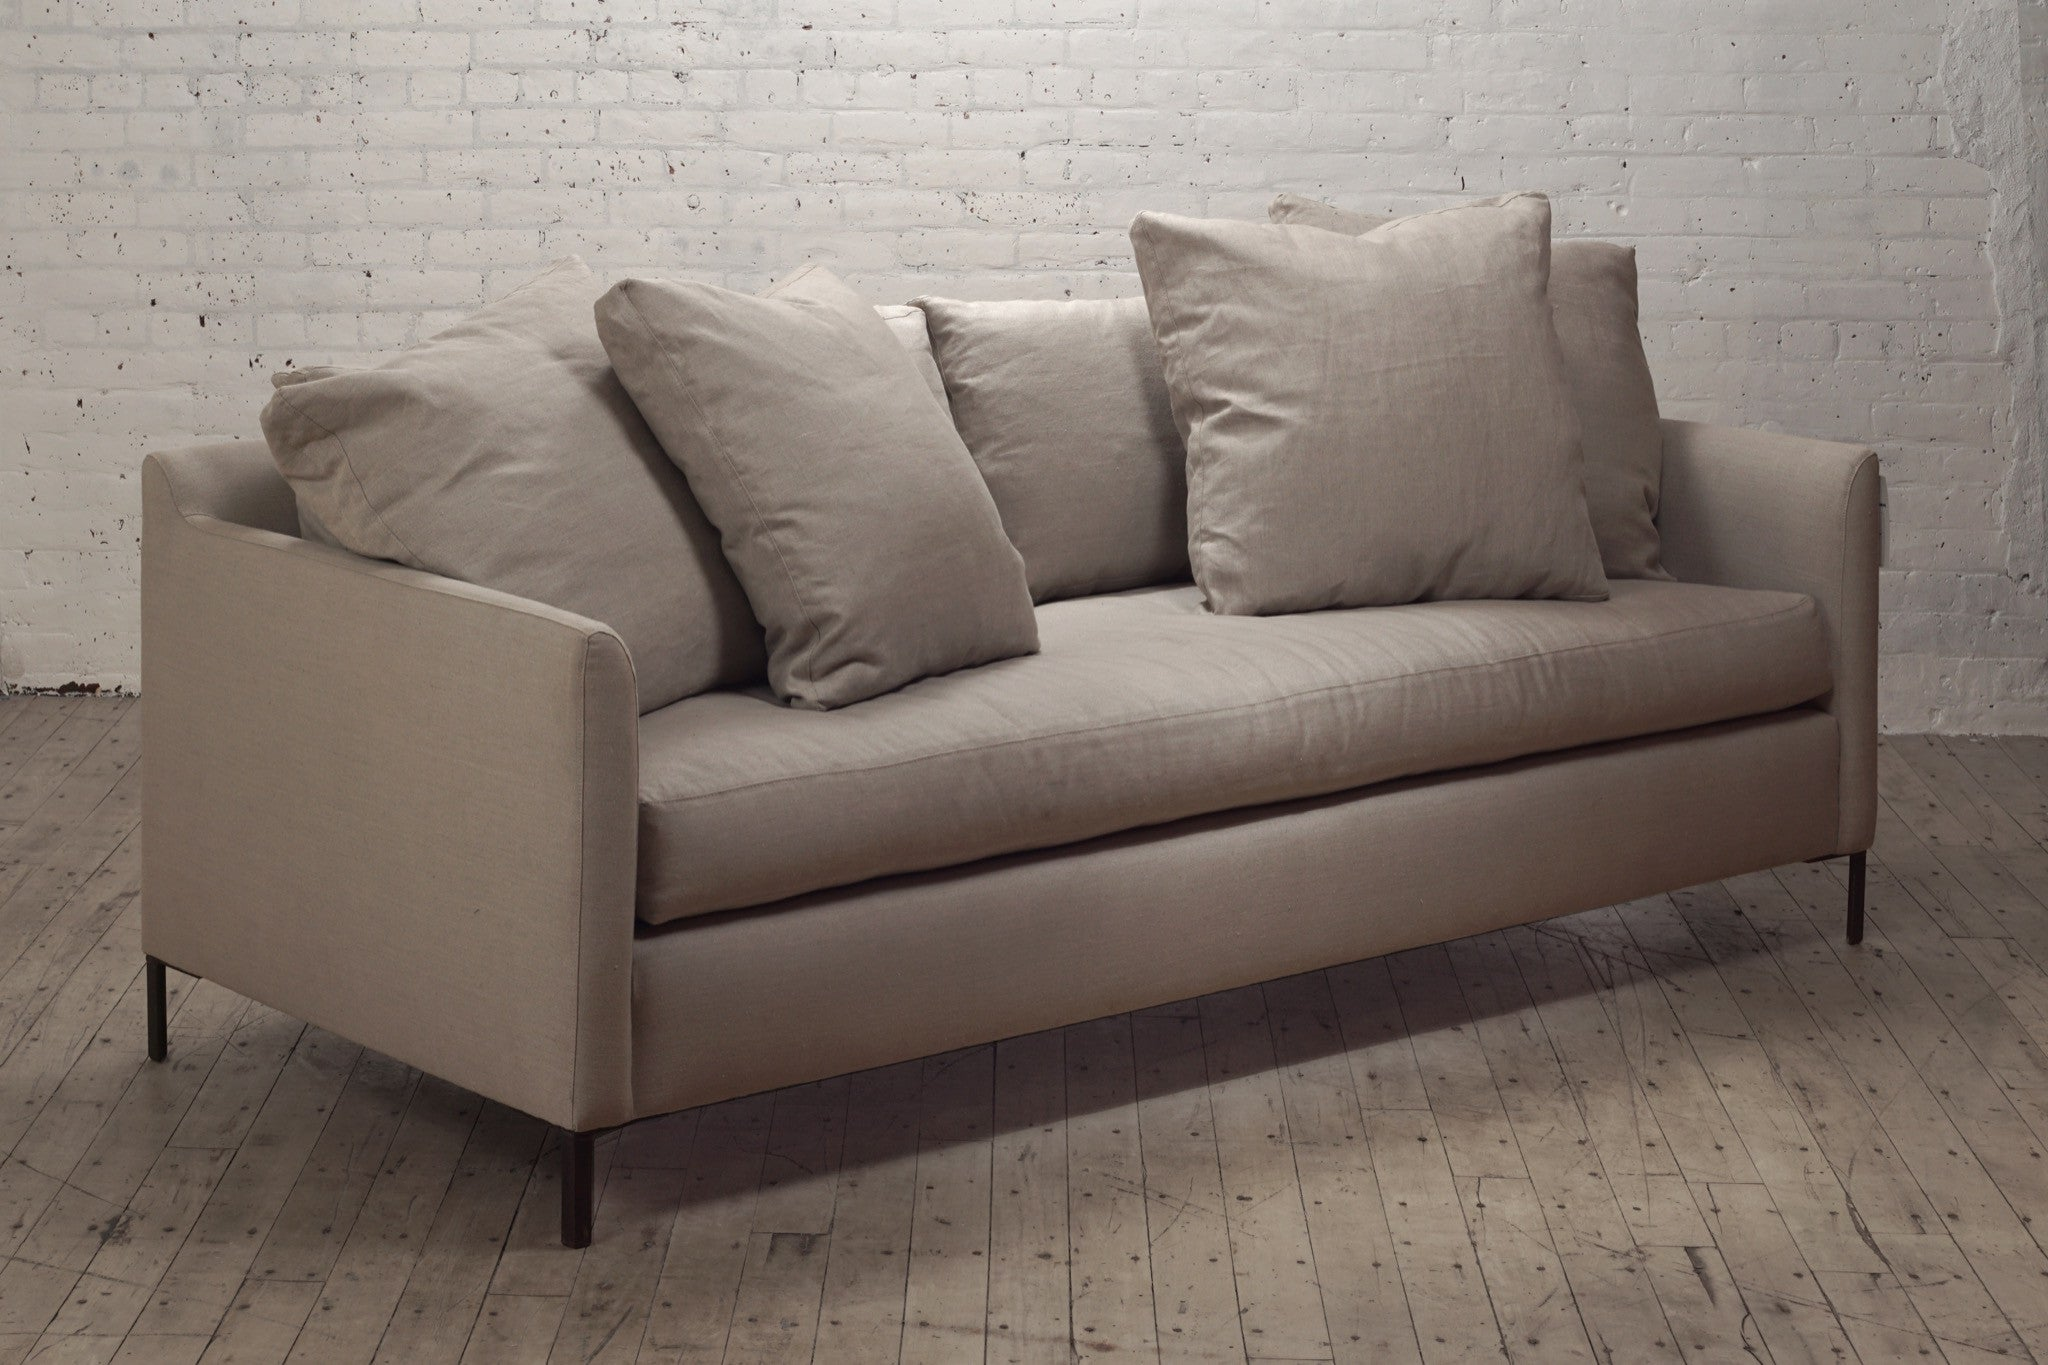 Radley Sofa – from the source